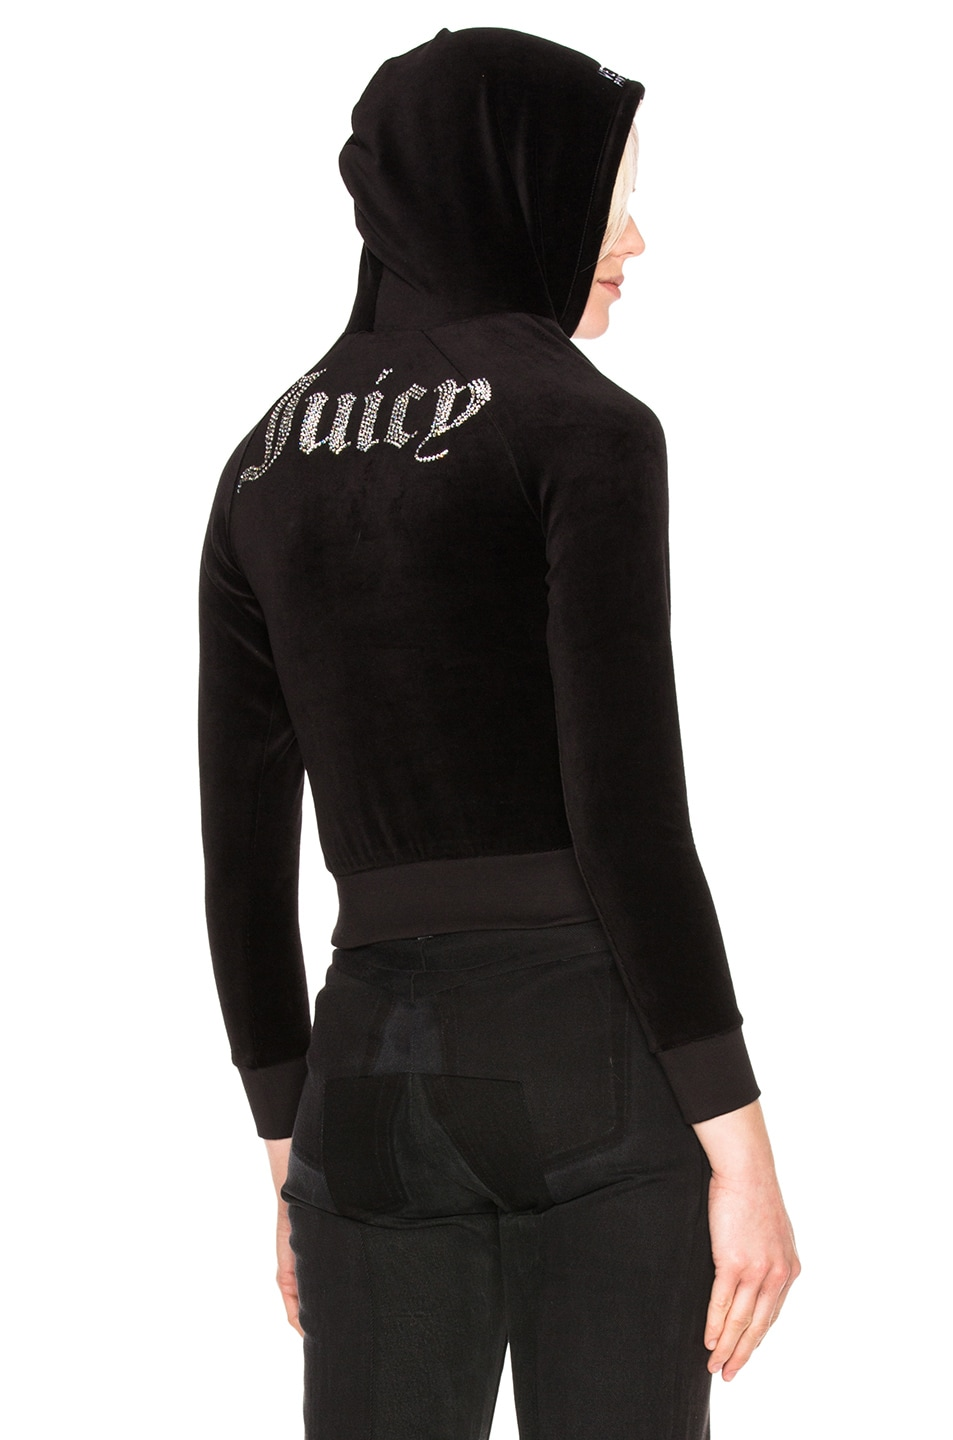 Image 1 of VETEMENTS x Juicy Couture Shrunk Shoulder Hoodie in Black 8c0c69e7a